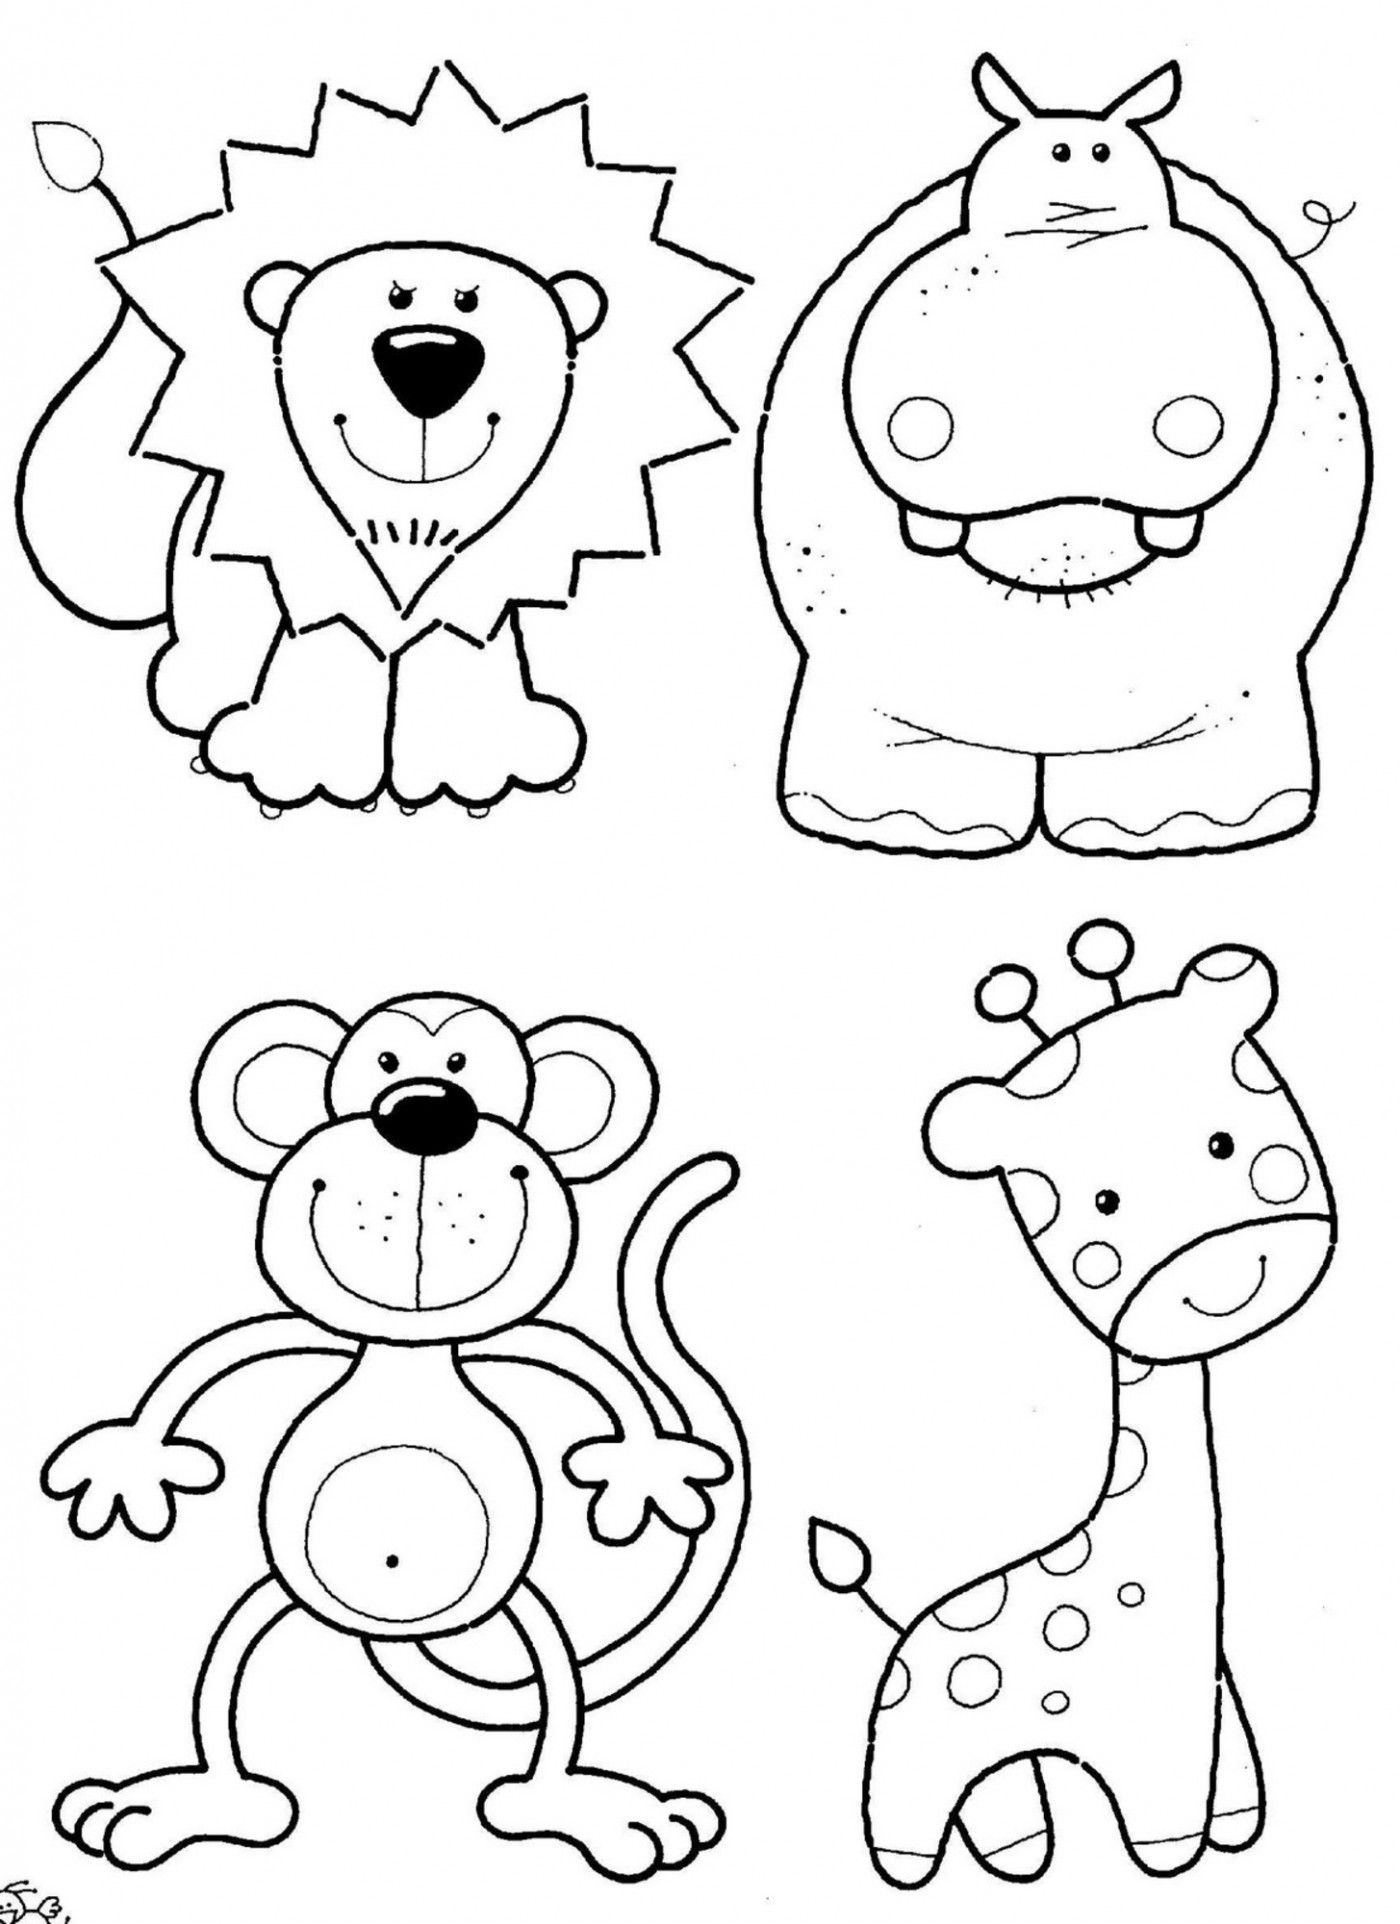 Childrens animal colouring pages - Animal Coloring Pages 14